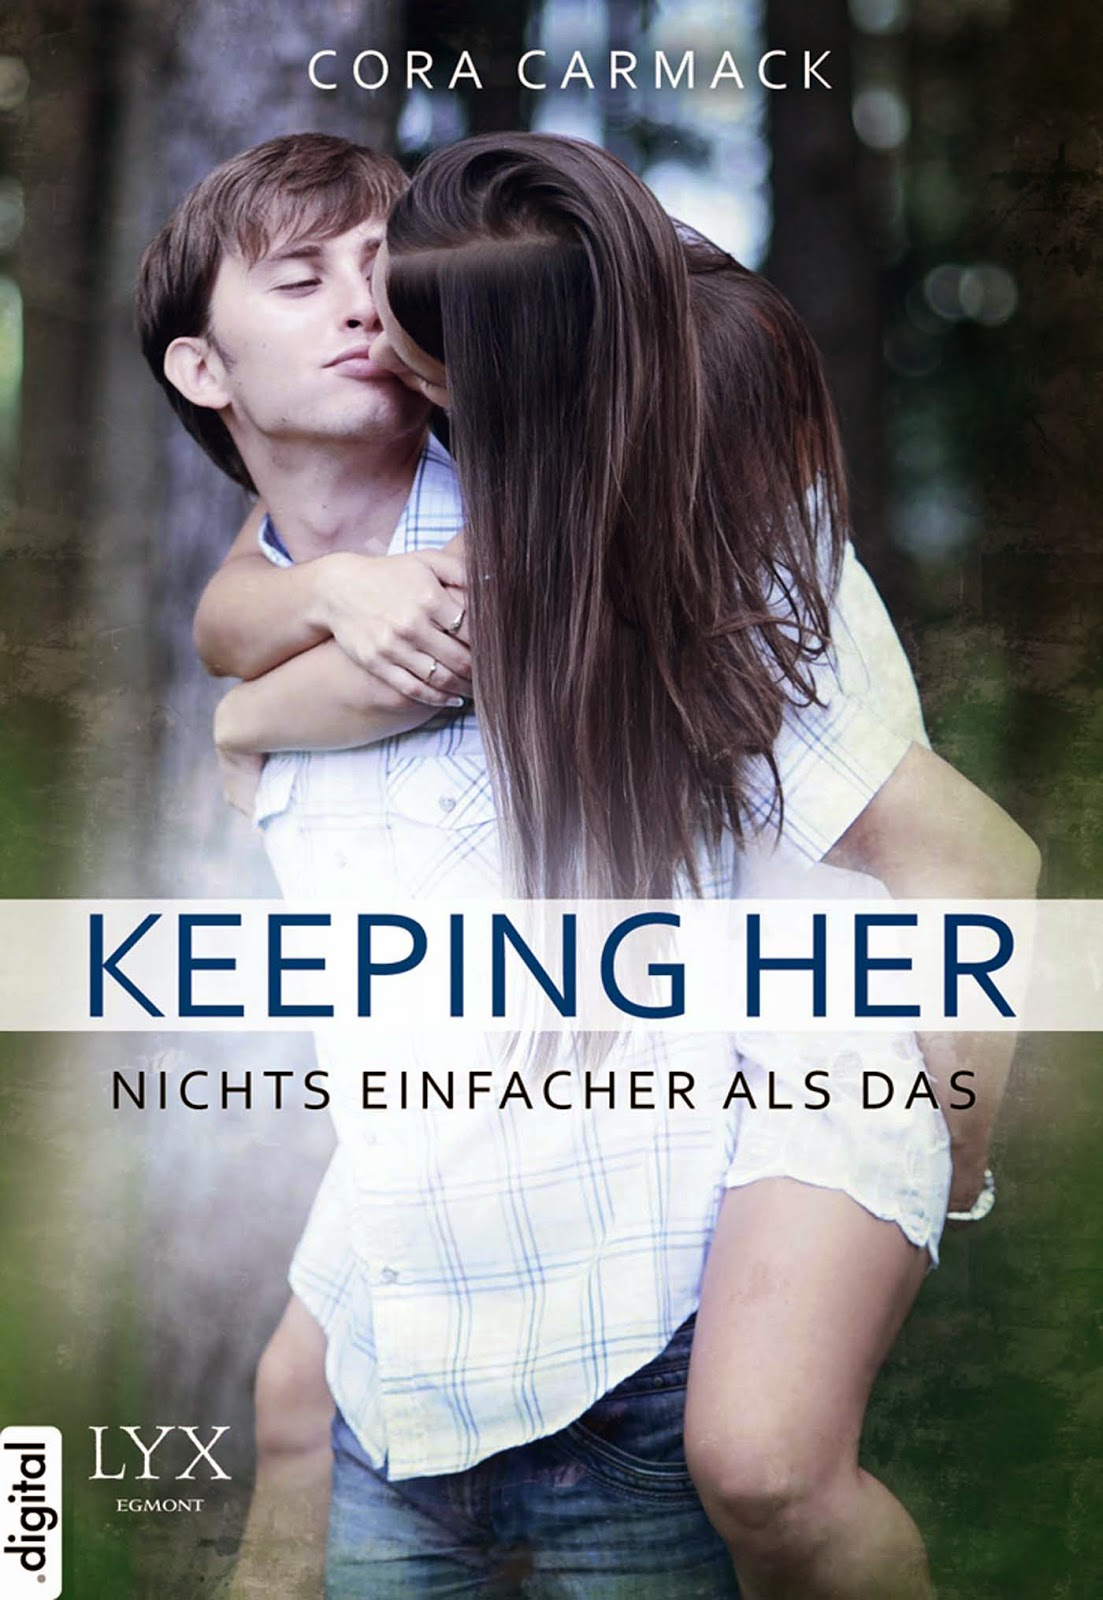 http://www.amazon.de/Keeping-Her-Nichts-einfacher-als-ebook/dp/B00J9X7LTM/ref=sr_1_3?ie=UTF8&qid=1410619959&sr=8-3&keywords=cora+carmack